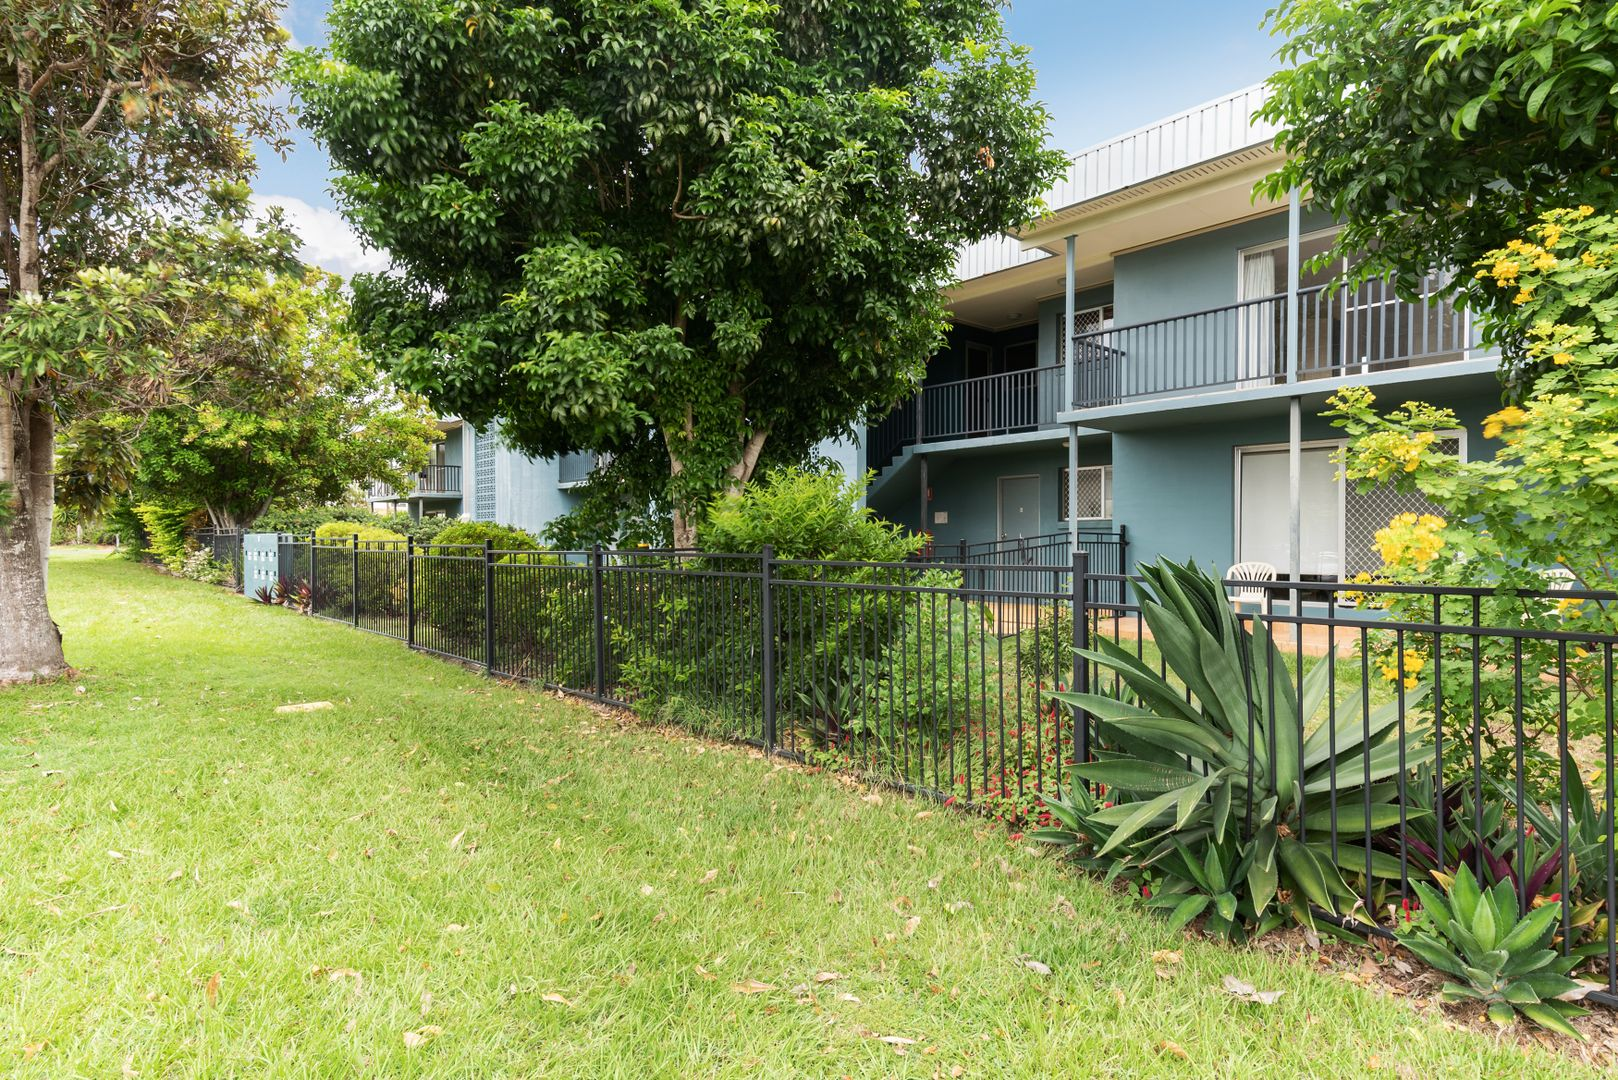 6/17 Bailey Street, Woody Point QLD 4019, Image 0